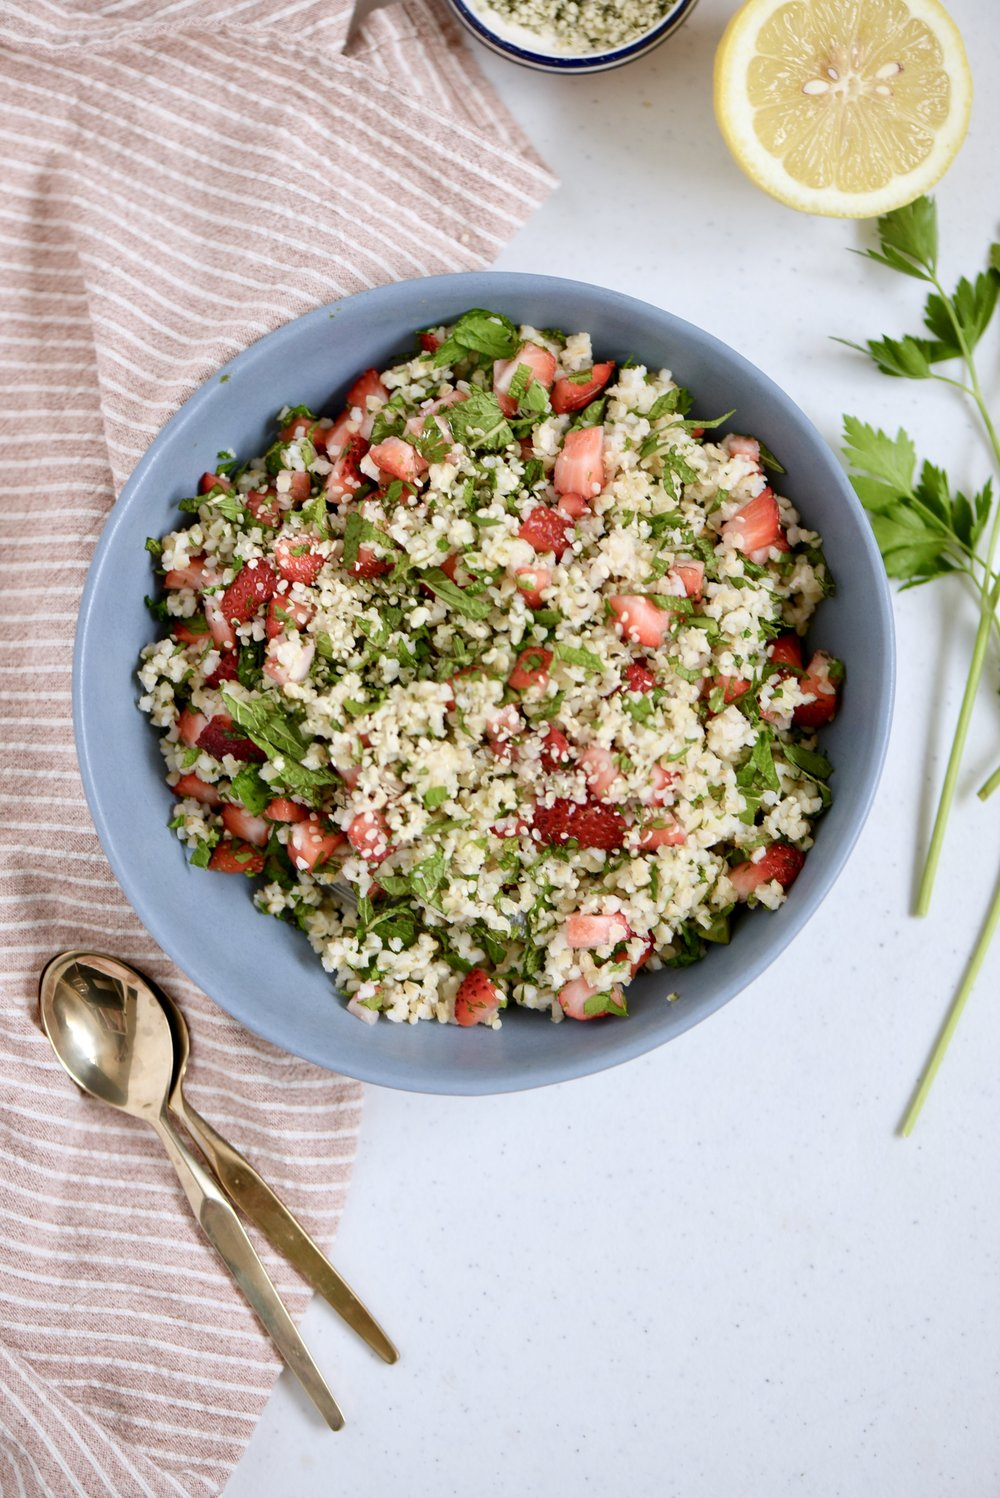 Strawberry & Hemp Seed Tabbouleh - Click here for recipe